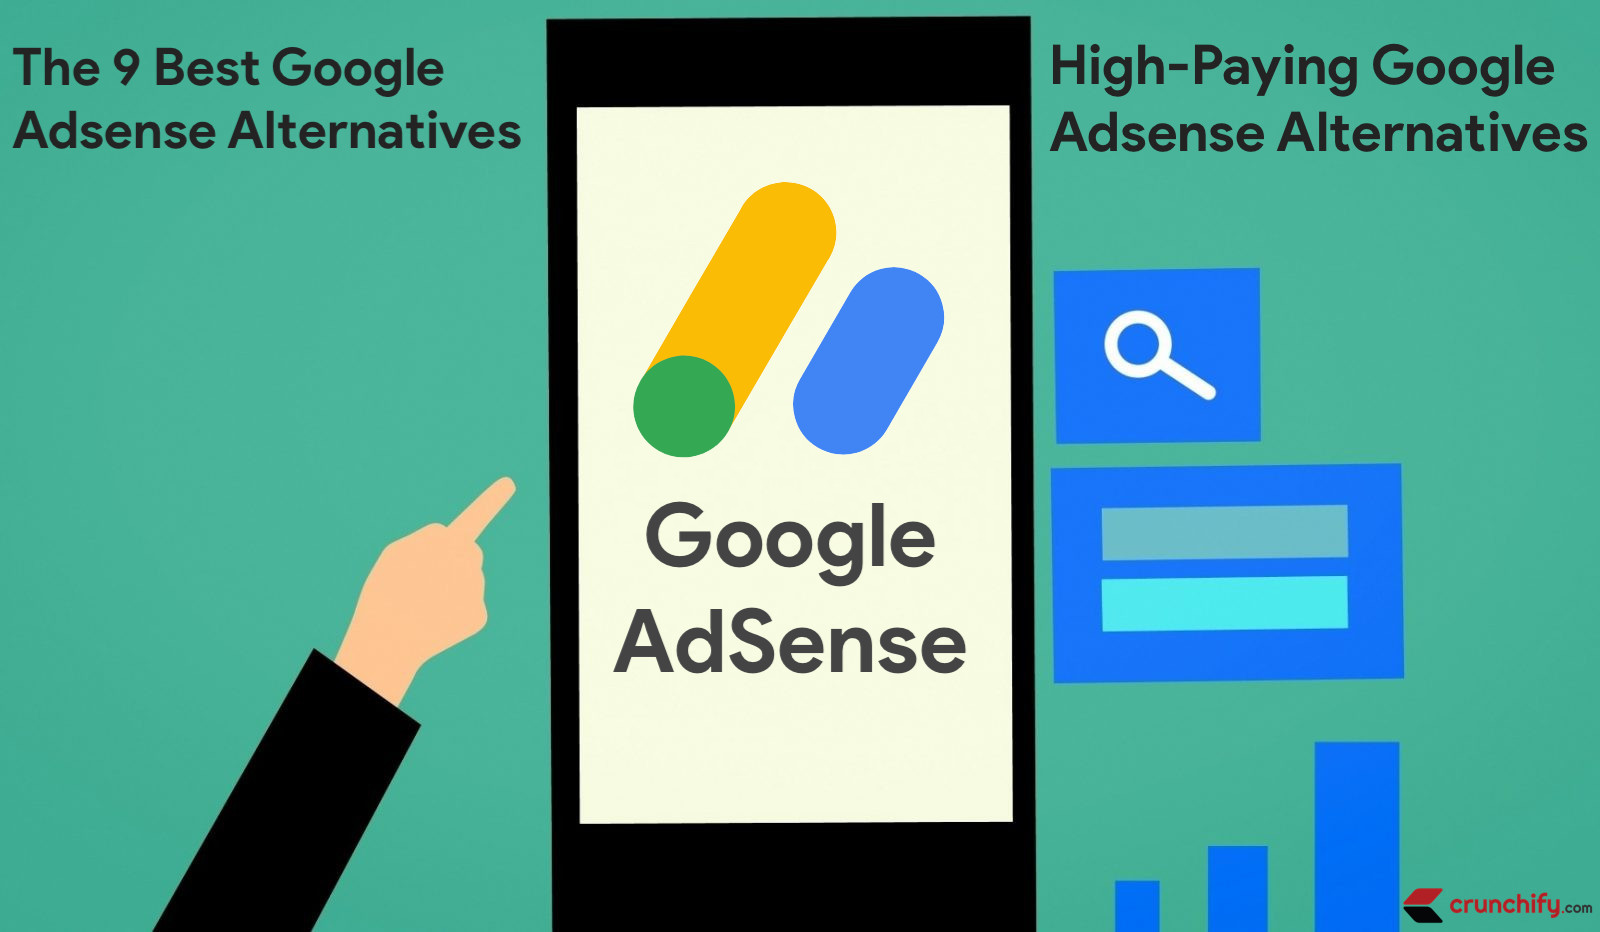 The 9 Best High-Paying Google Adsense Alternatives to Make